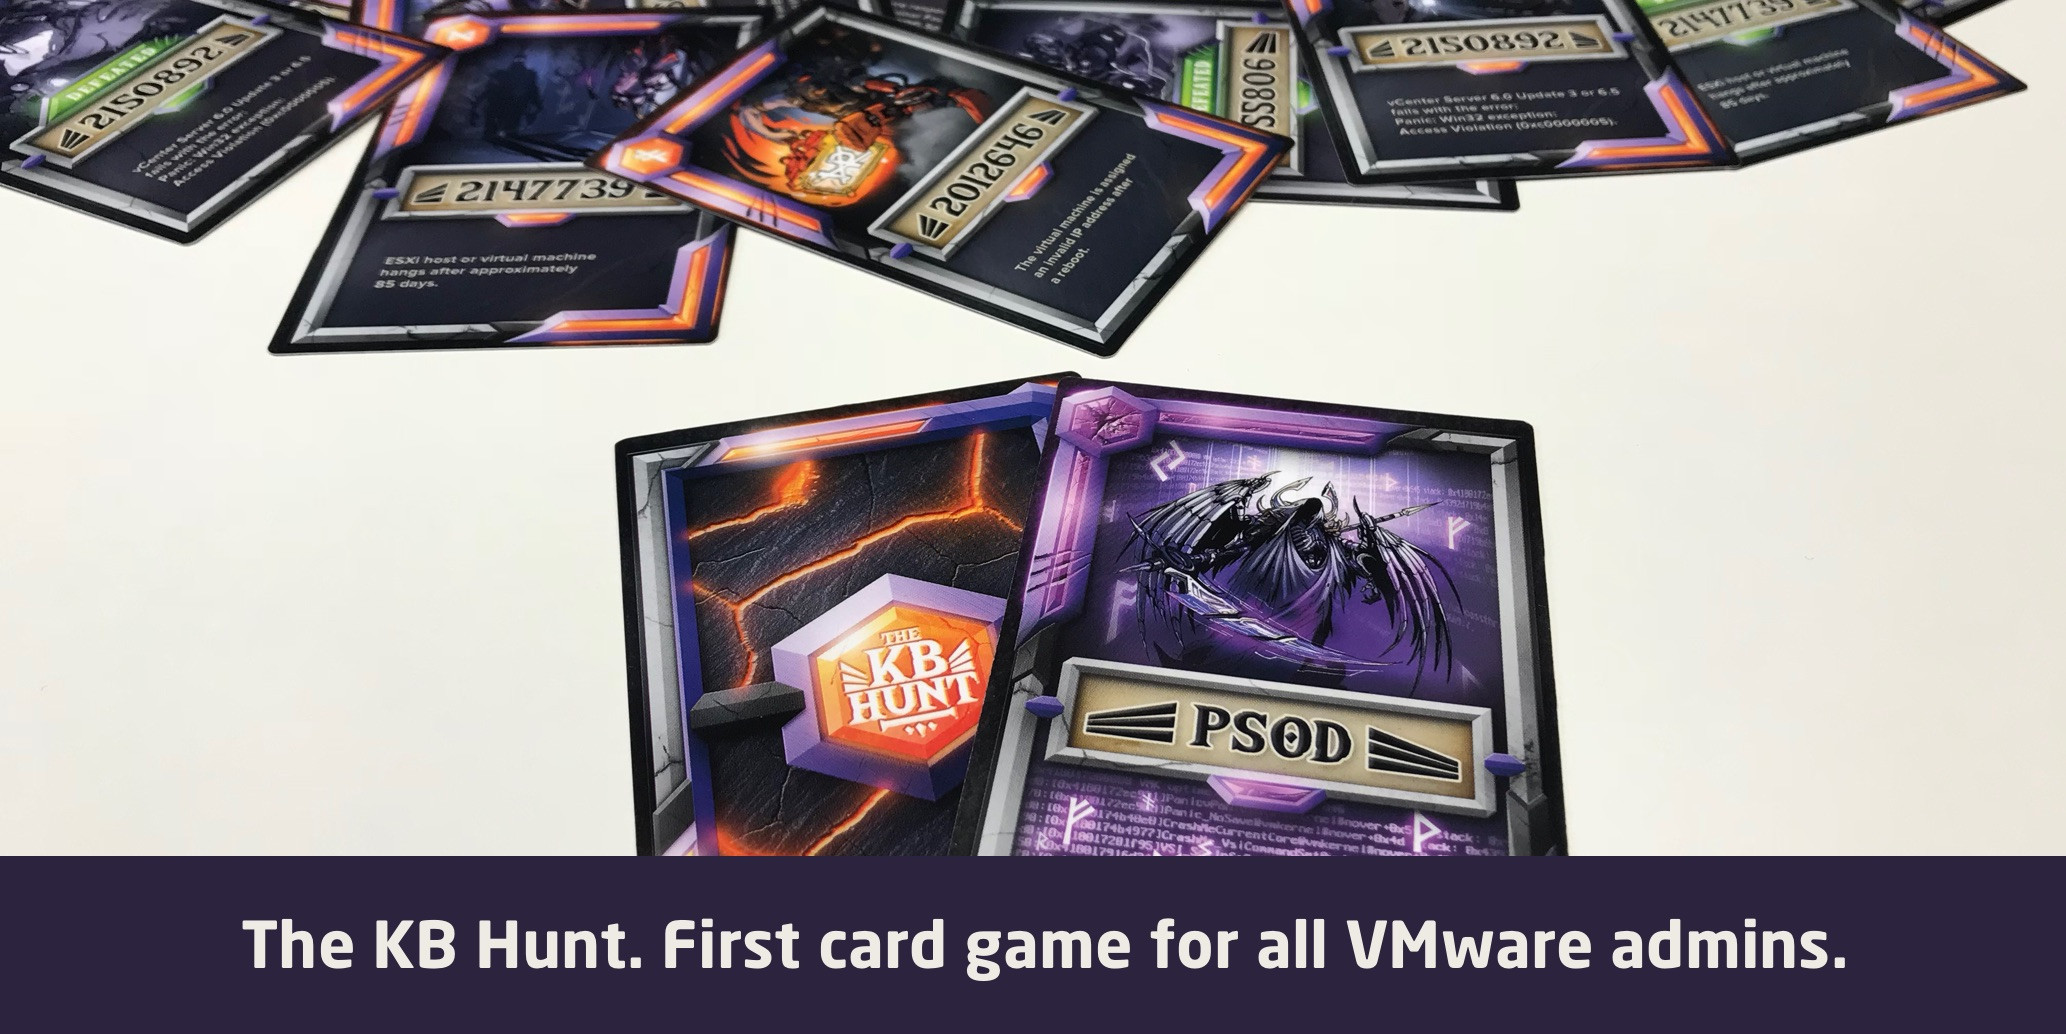 KB Hunt VMware admin card game